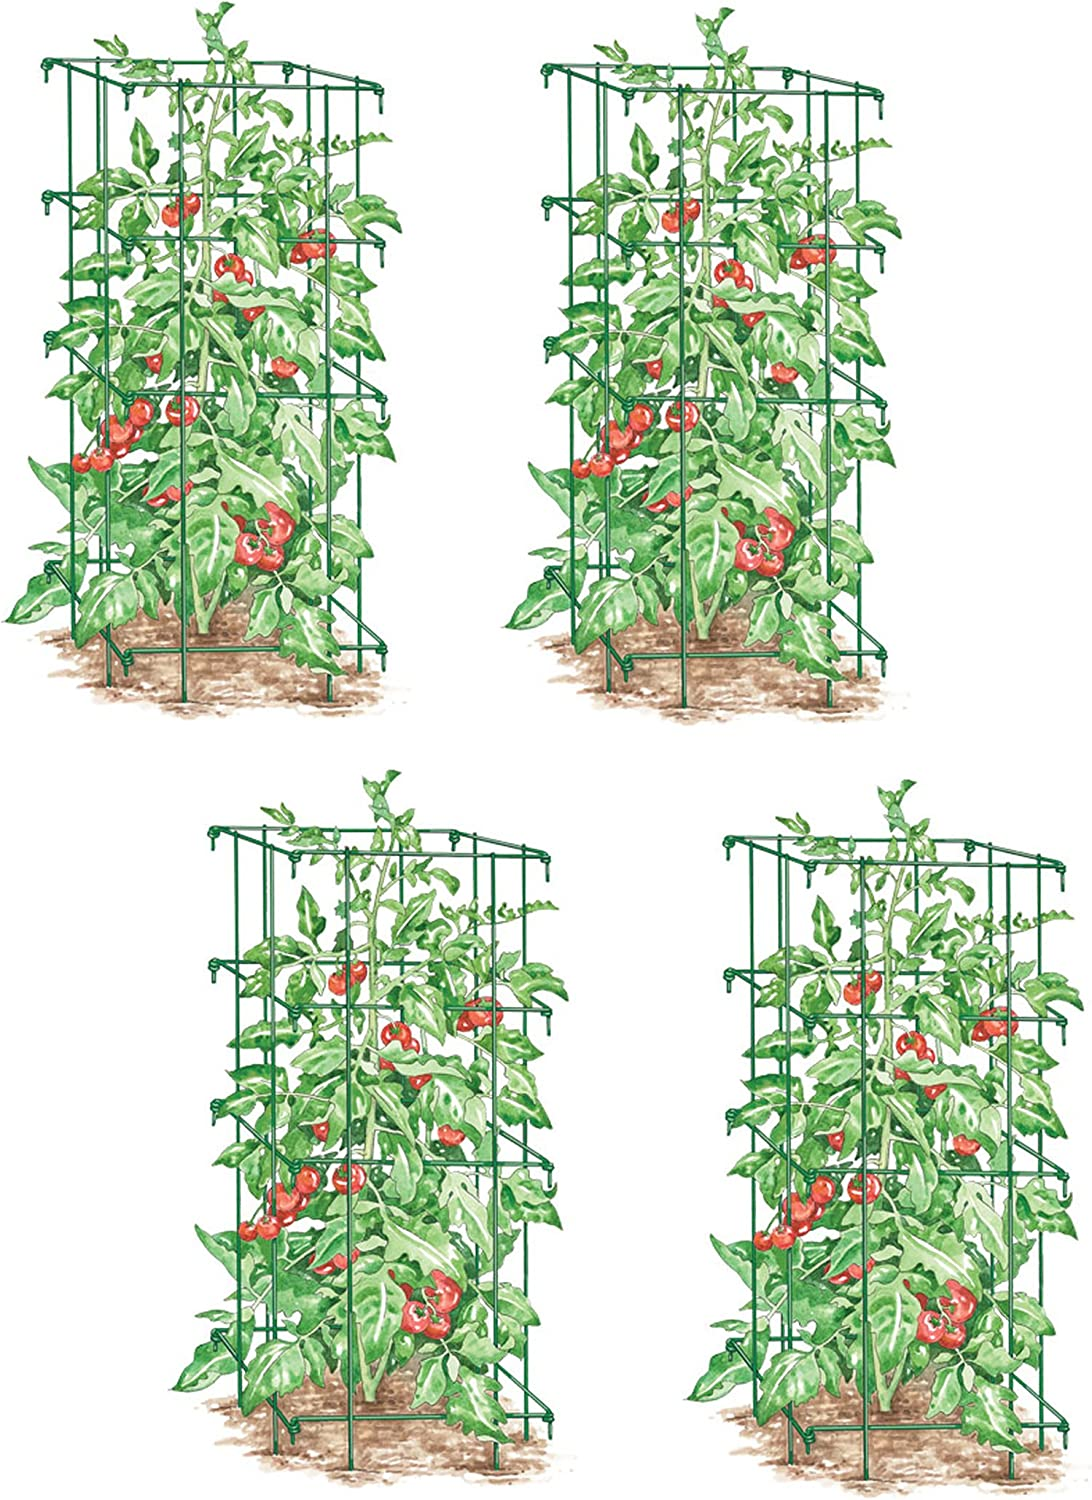 Gardener s Supply Company Lifetime Tomato Cages, Heavy Gauge, Set of 4